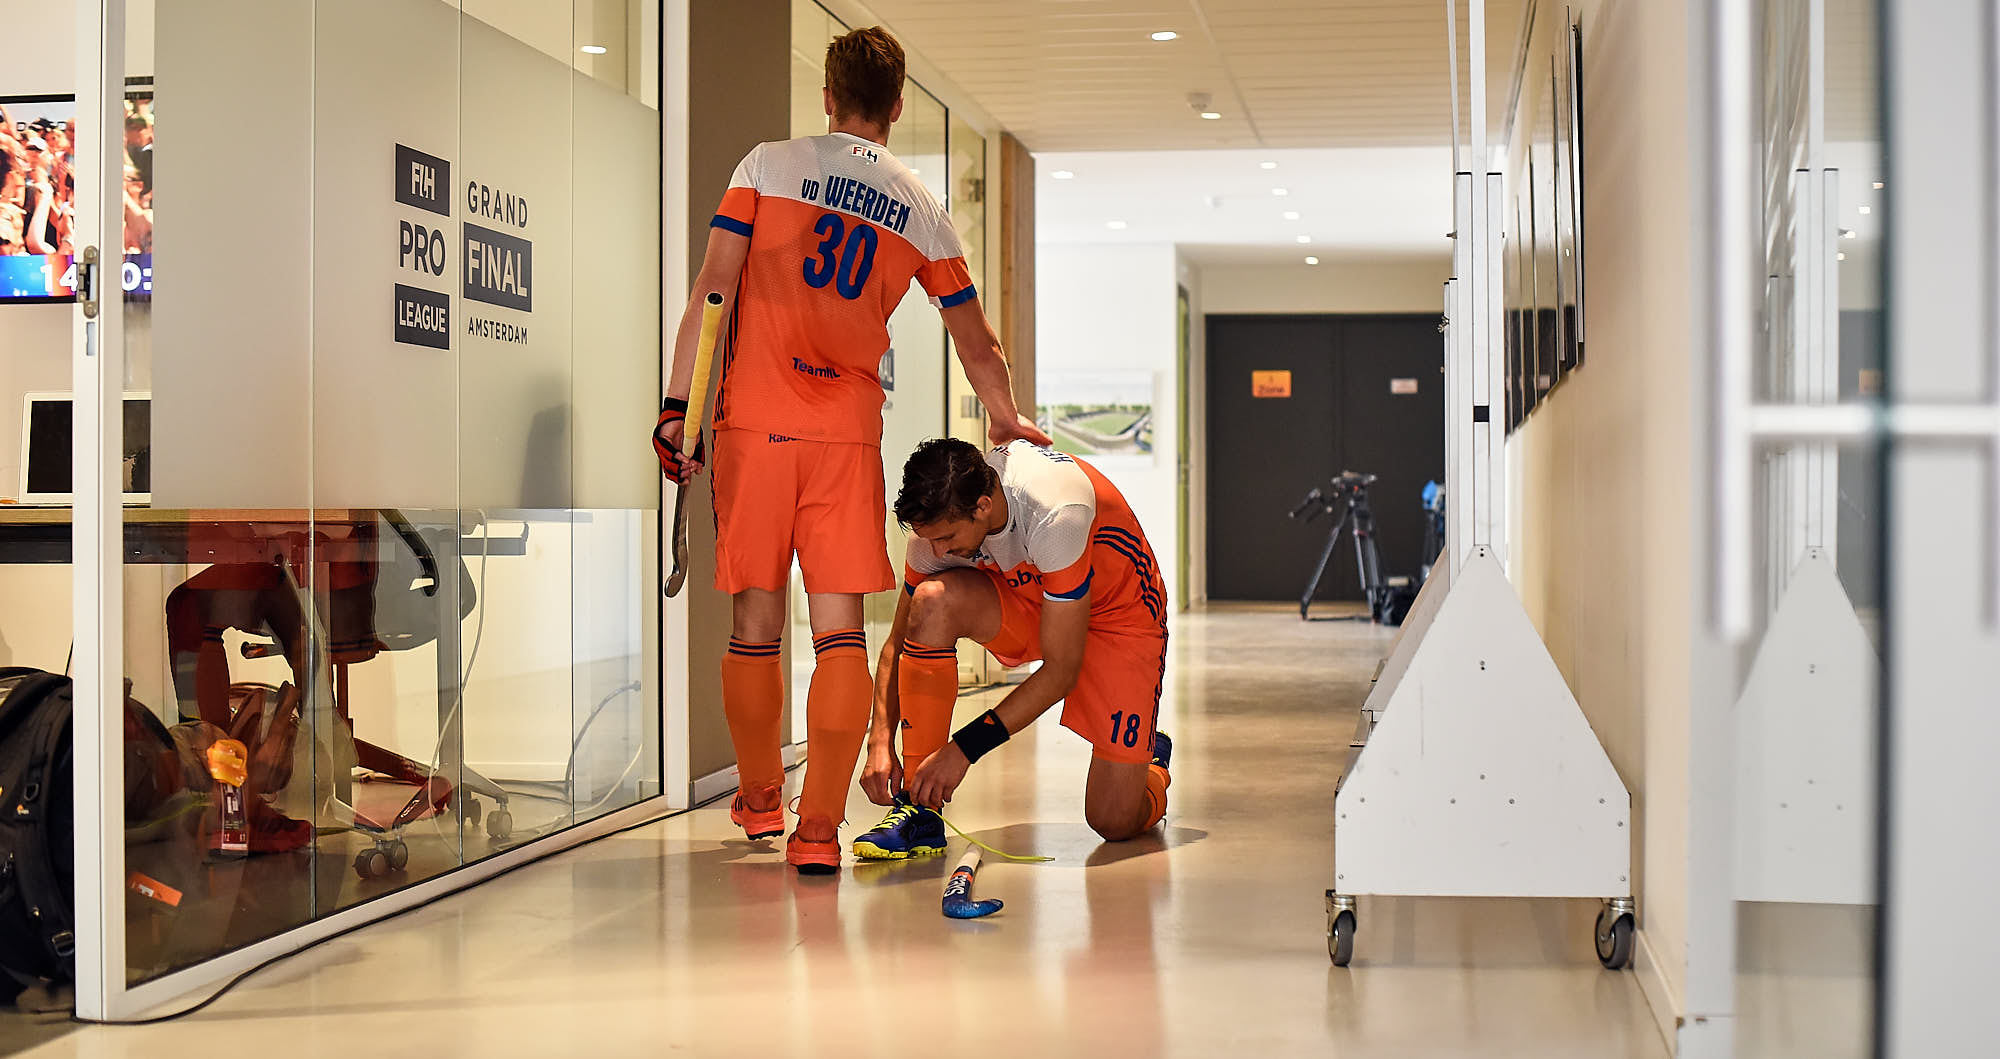 Dutch hockey players behind the scenes just before FIH pro league in Amsterdam